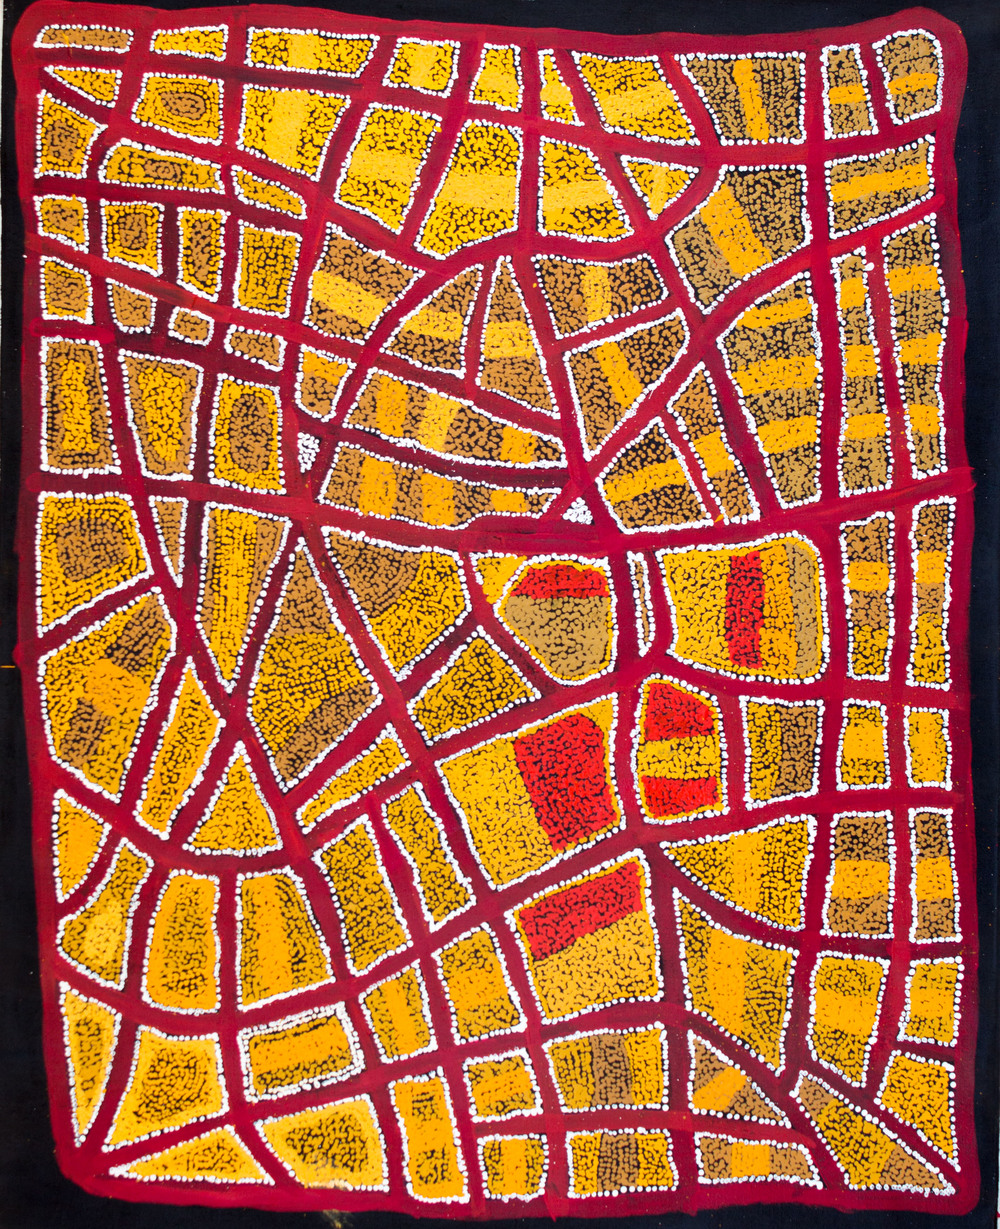 Œuvre de Ian Rictor. Format : 137 x 110 cm. Titre : Kanmati. © Photo : Aboriginal Signature, with courtesy of the Spinifex Art Project.